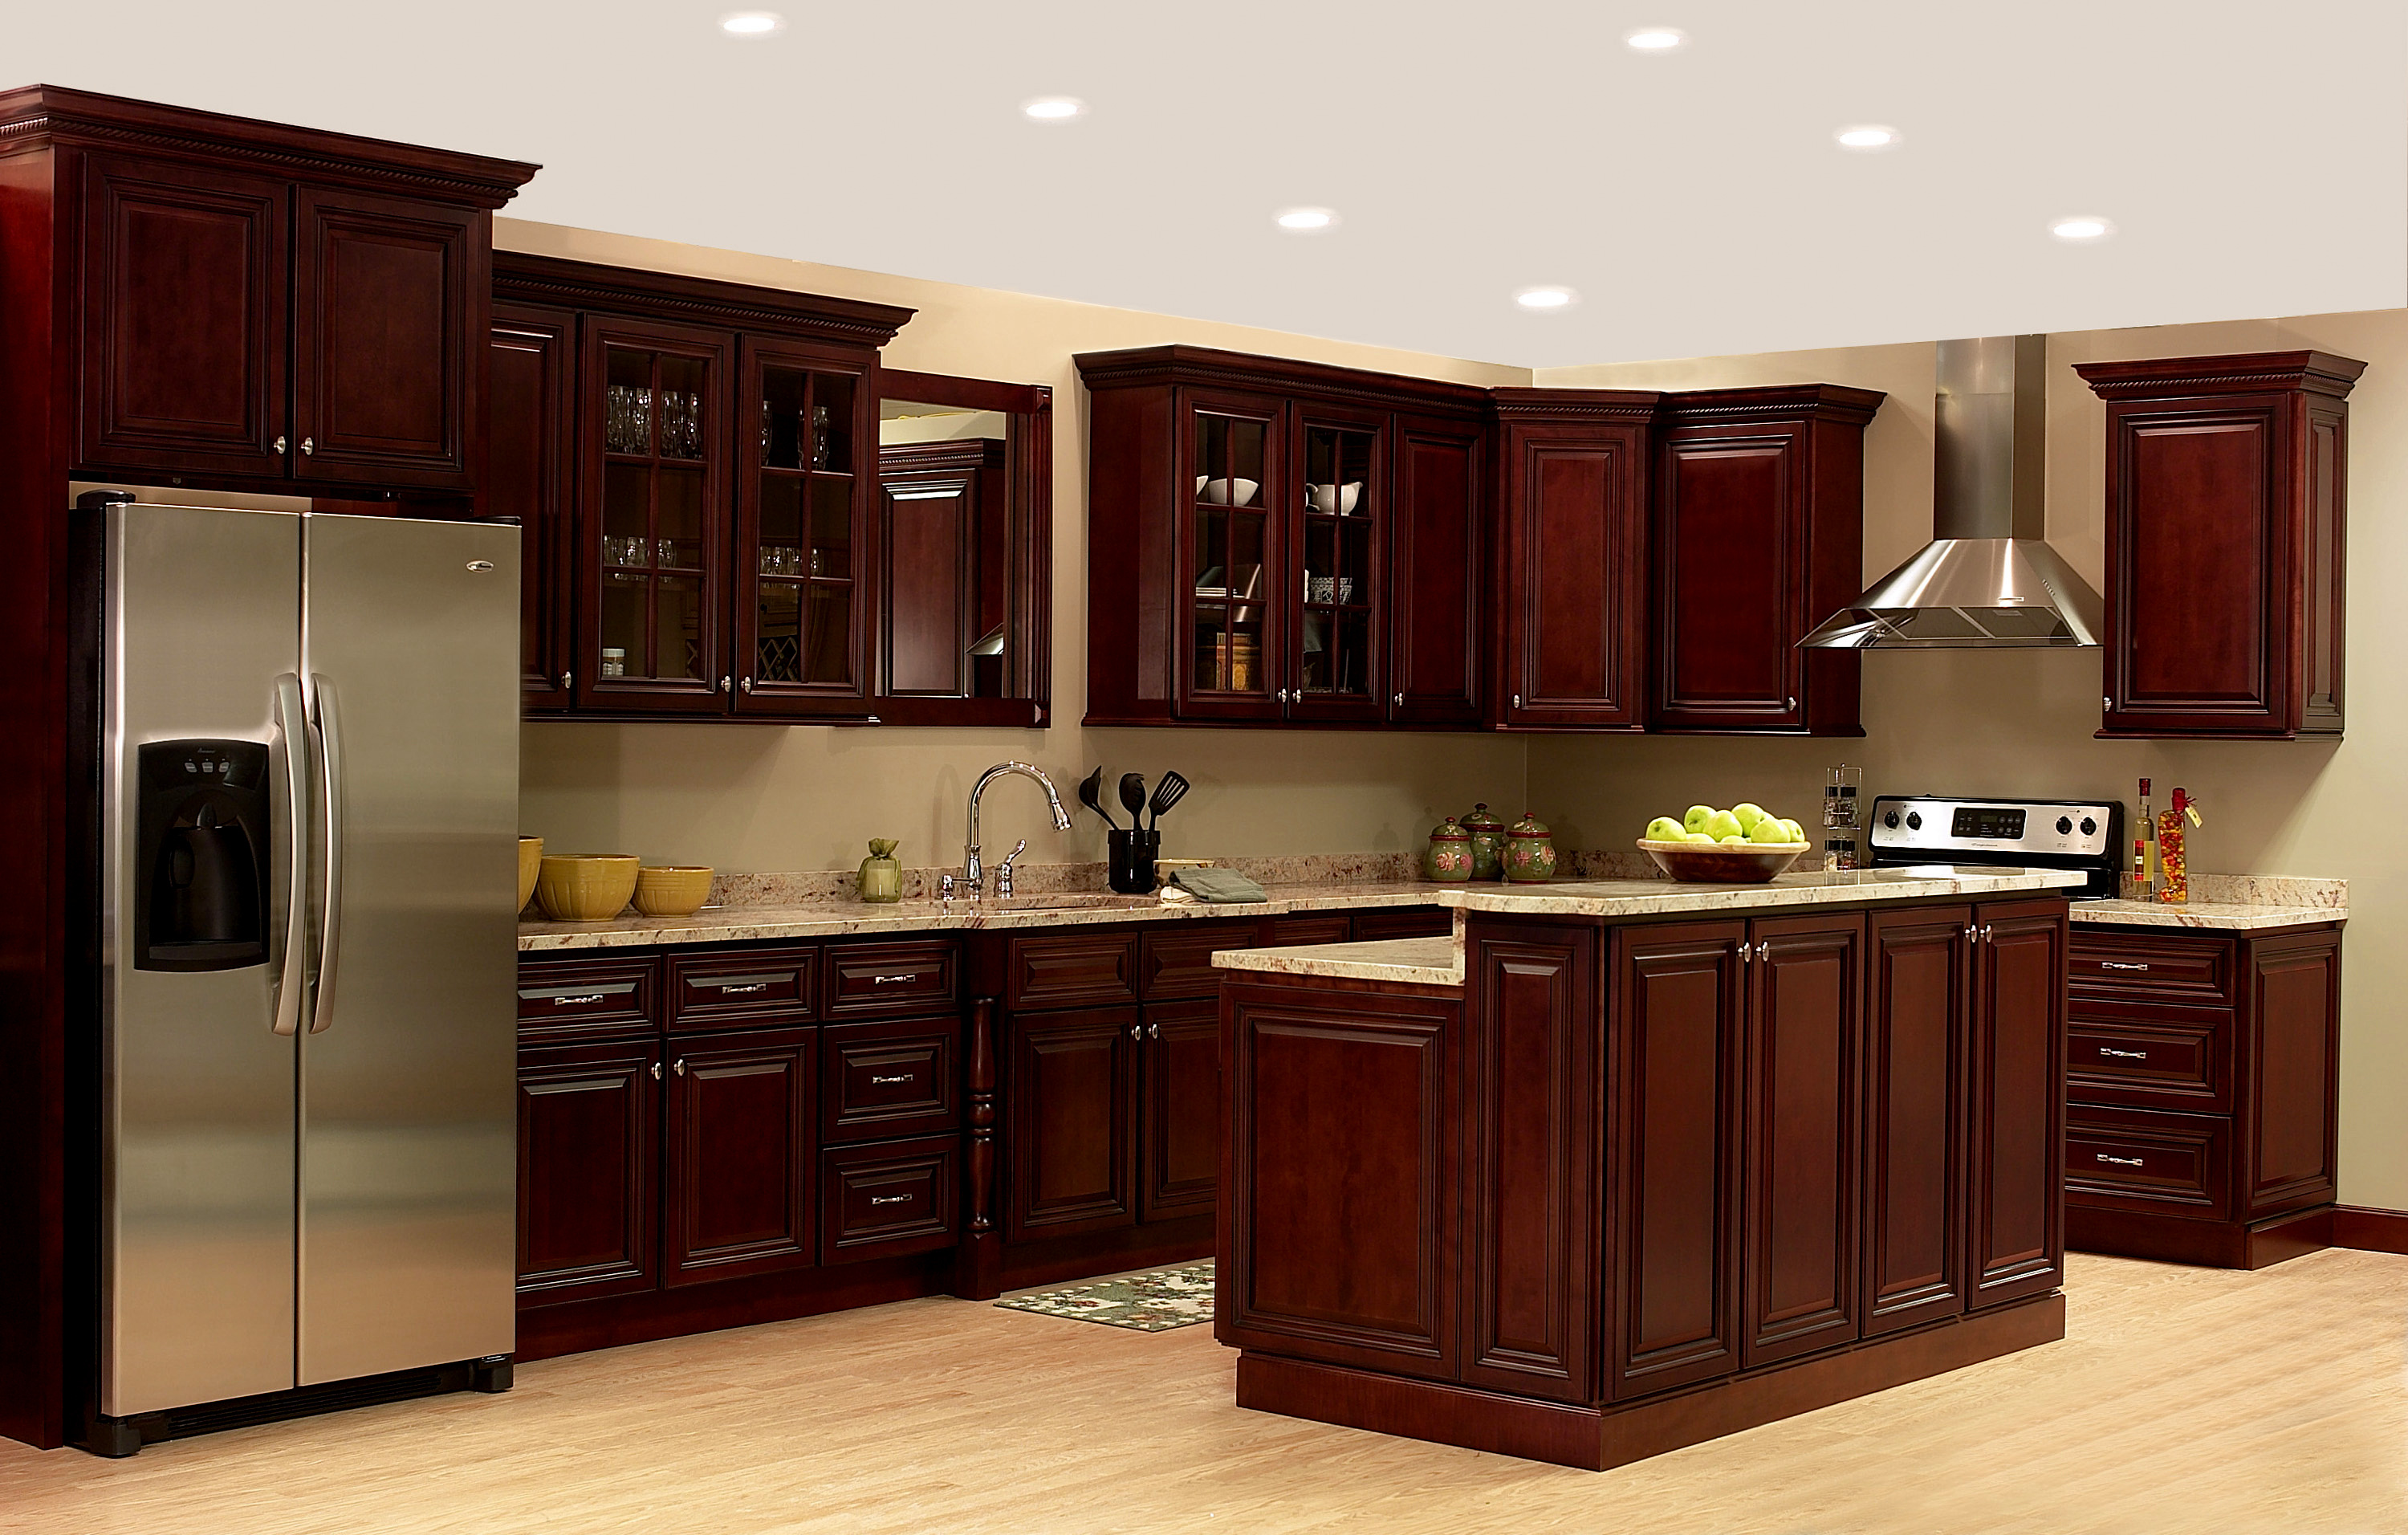 awesome-wood-kitchen-cabinets-with-regard-to-rta-kitchen-cabinets-loudnice-kitchen-images-oak-kitche